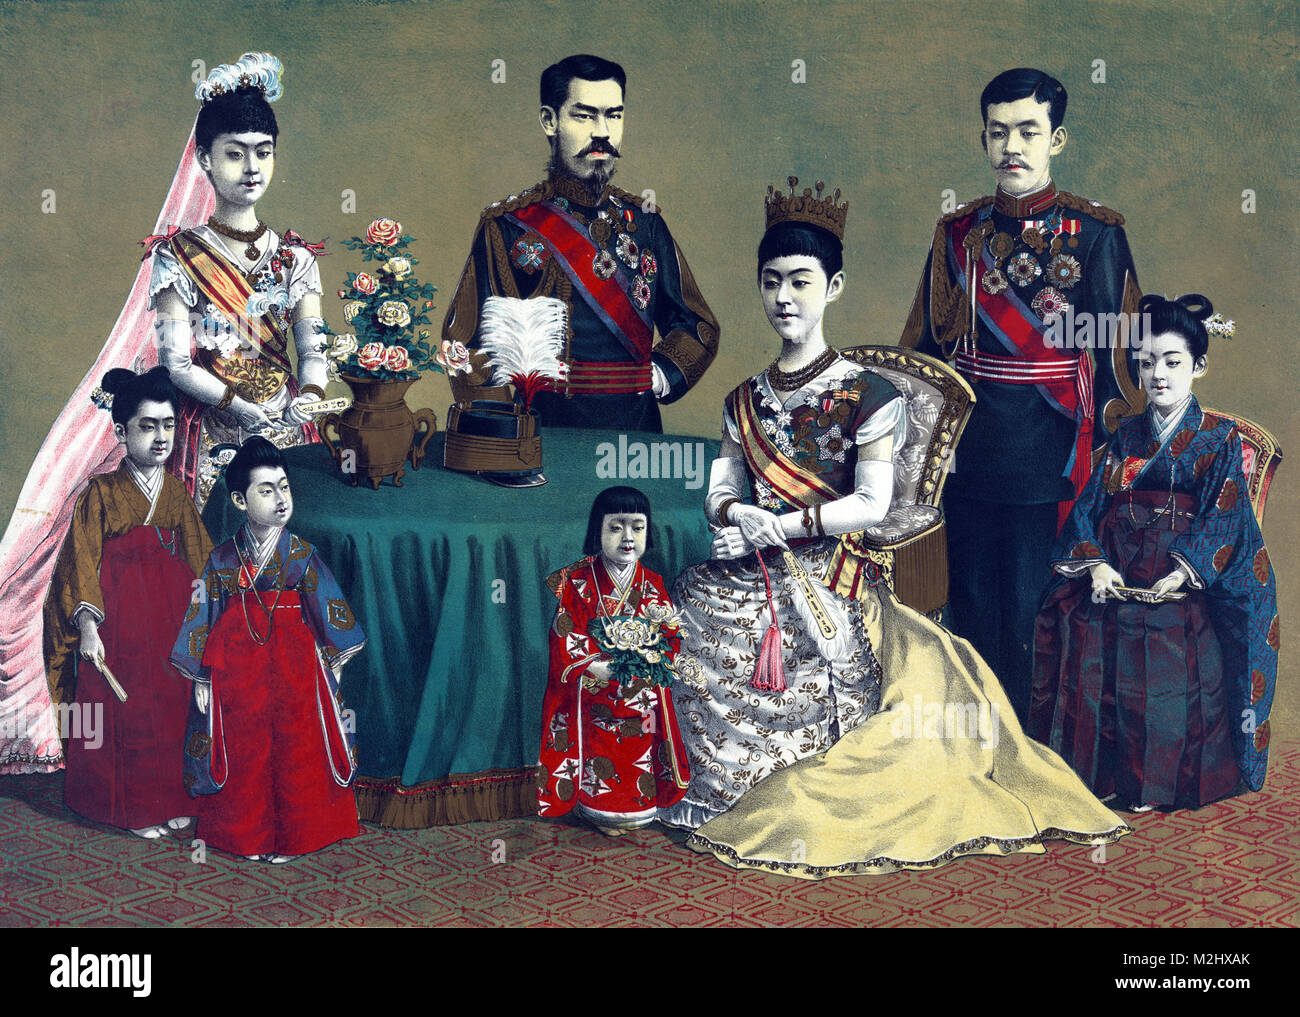 Meiji, Emperor of Japan and the Imperial Family, 1900 - Stock Image